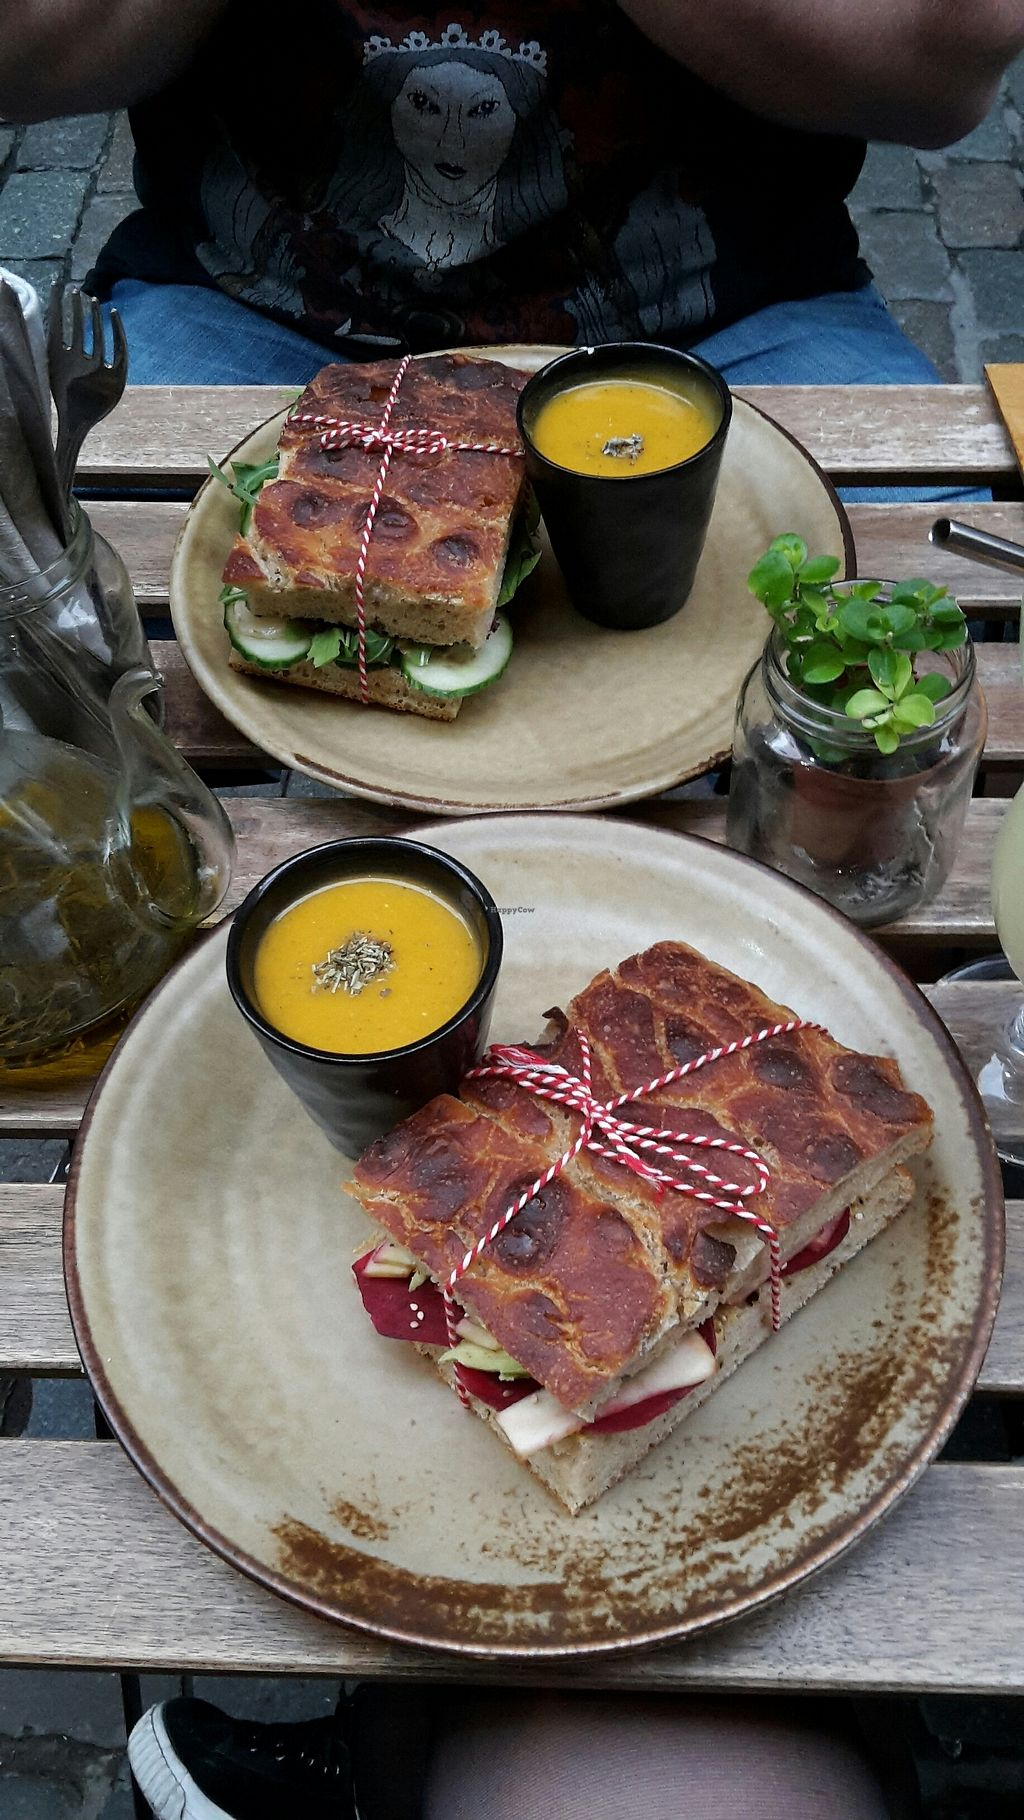 """Photo of The Sister  by <a href=""""/members/profile/Hindberg"""">Hindberg</a> <br/>Wide selection of vegan sandwiches. Comes with soup <br/> August 19, 2017  - <a href='/contact/abuse/image/78916/294454'>Report</a>"""